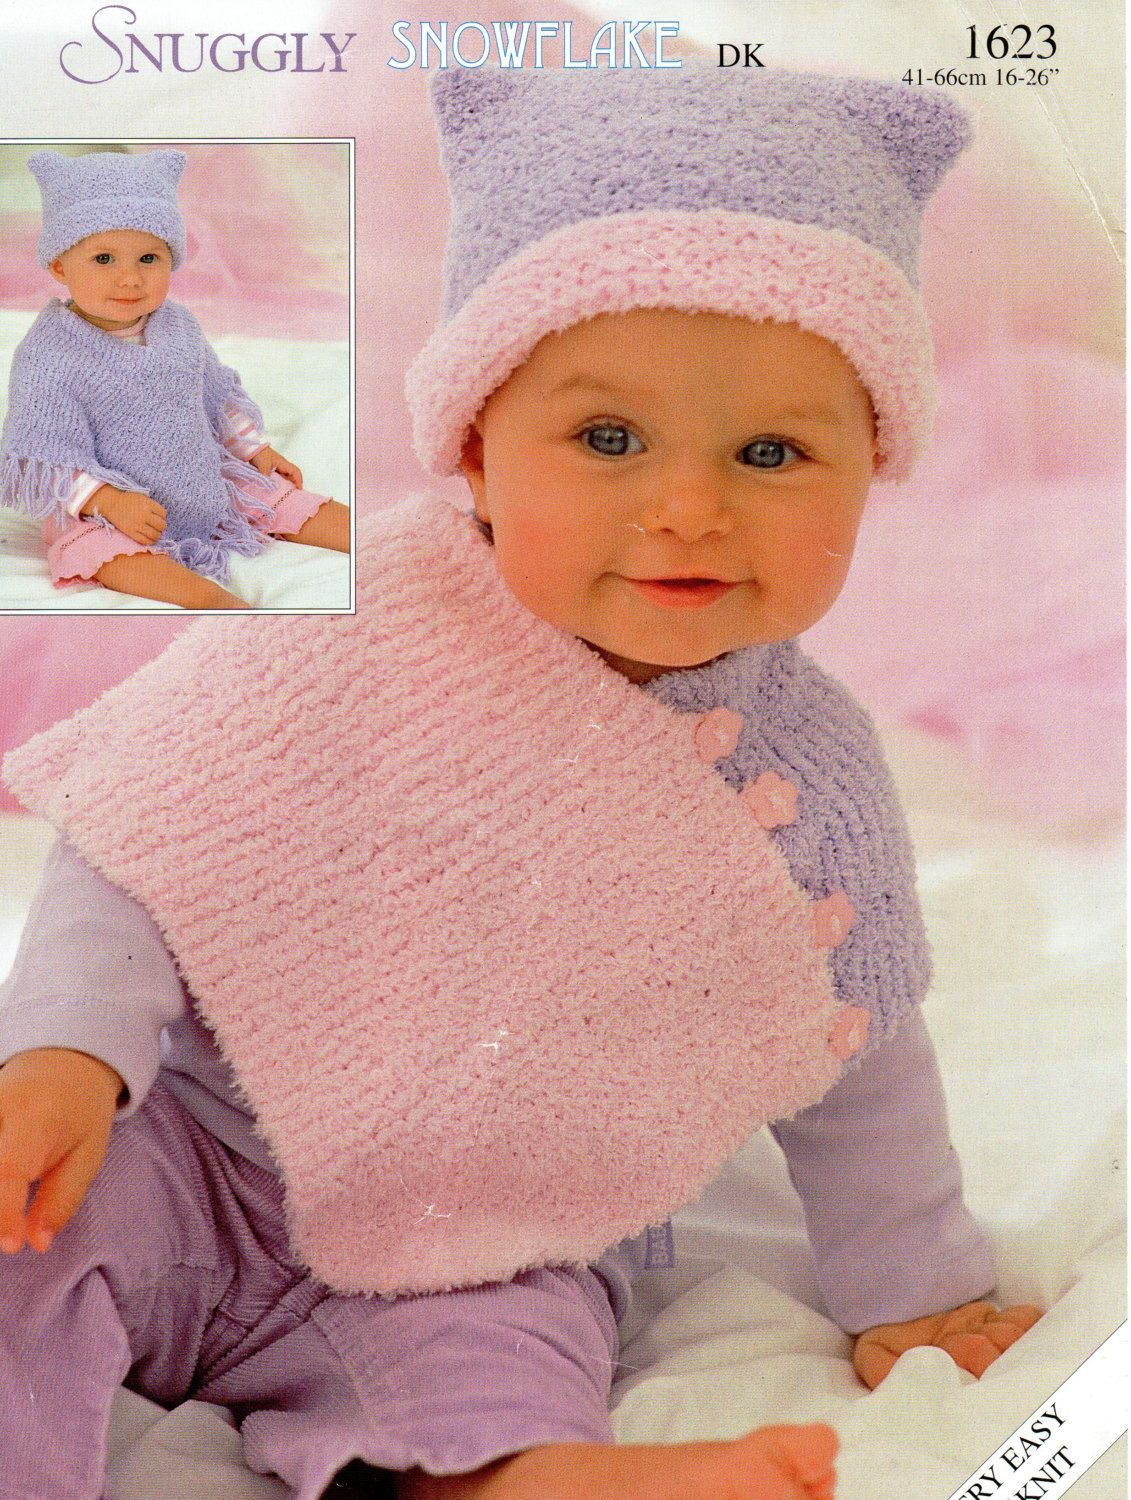 Child S Poncho Knitting Pattern : Baby ponchos knitting pattern childs hats